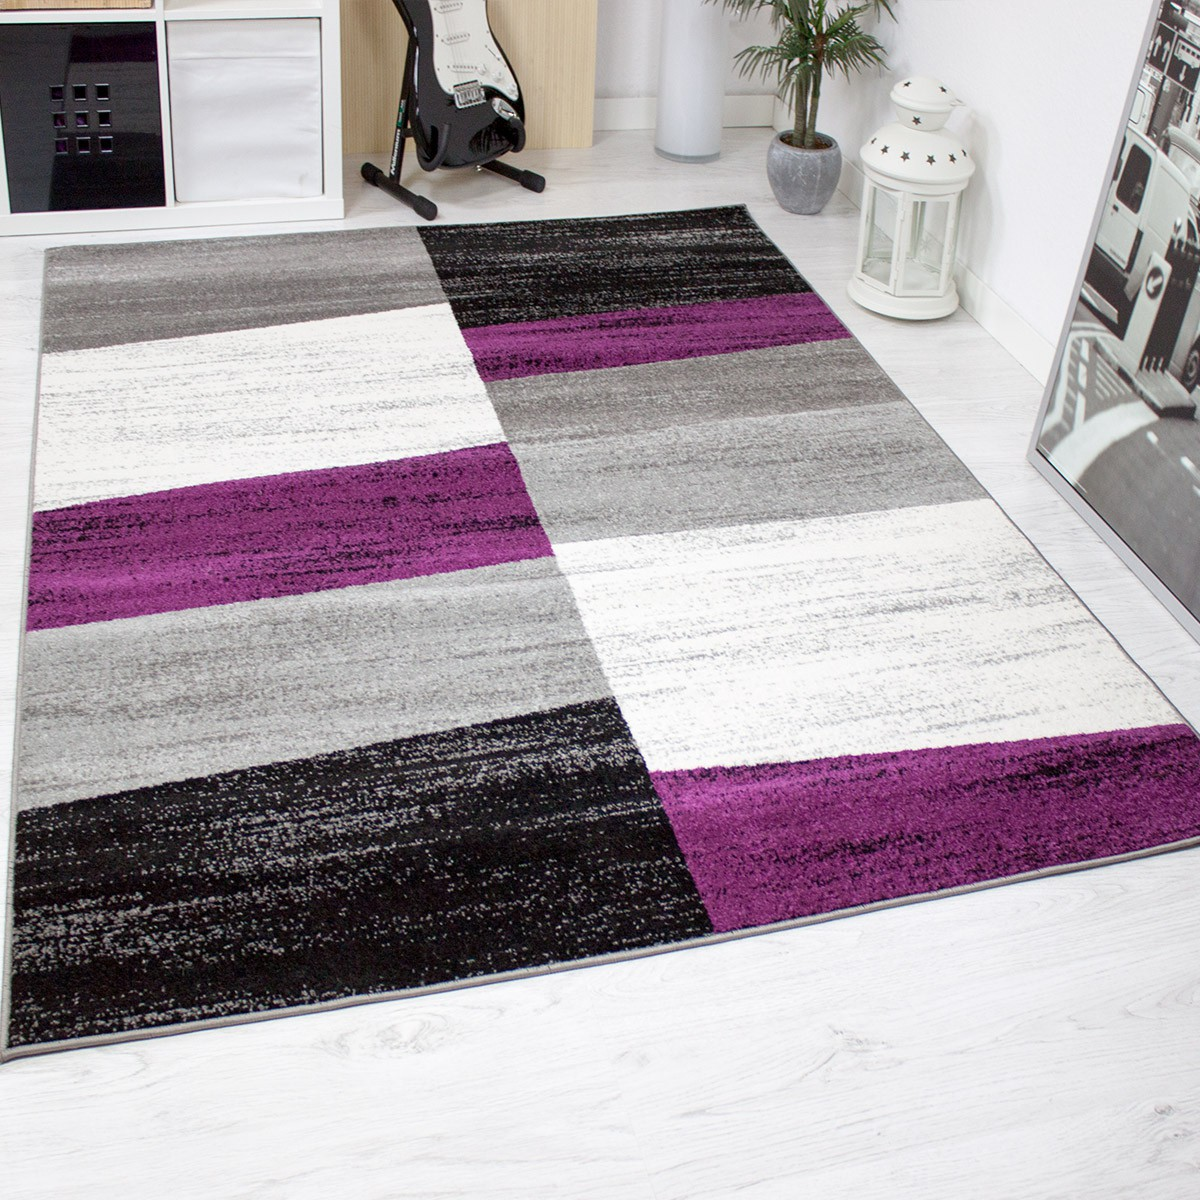 design salon tapis g om trique motif mouchet mauve gris blanc noir ebay. Black Bedroom Furniture Sets. Home Design Ideas